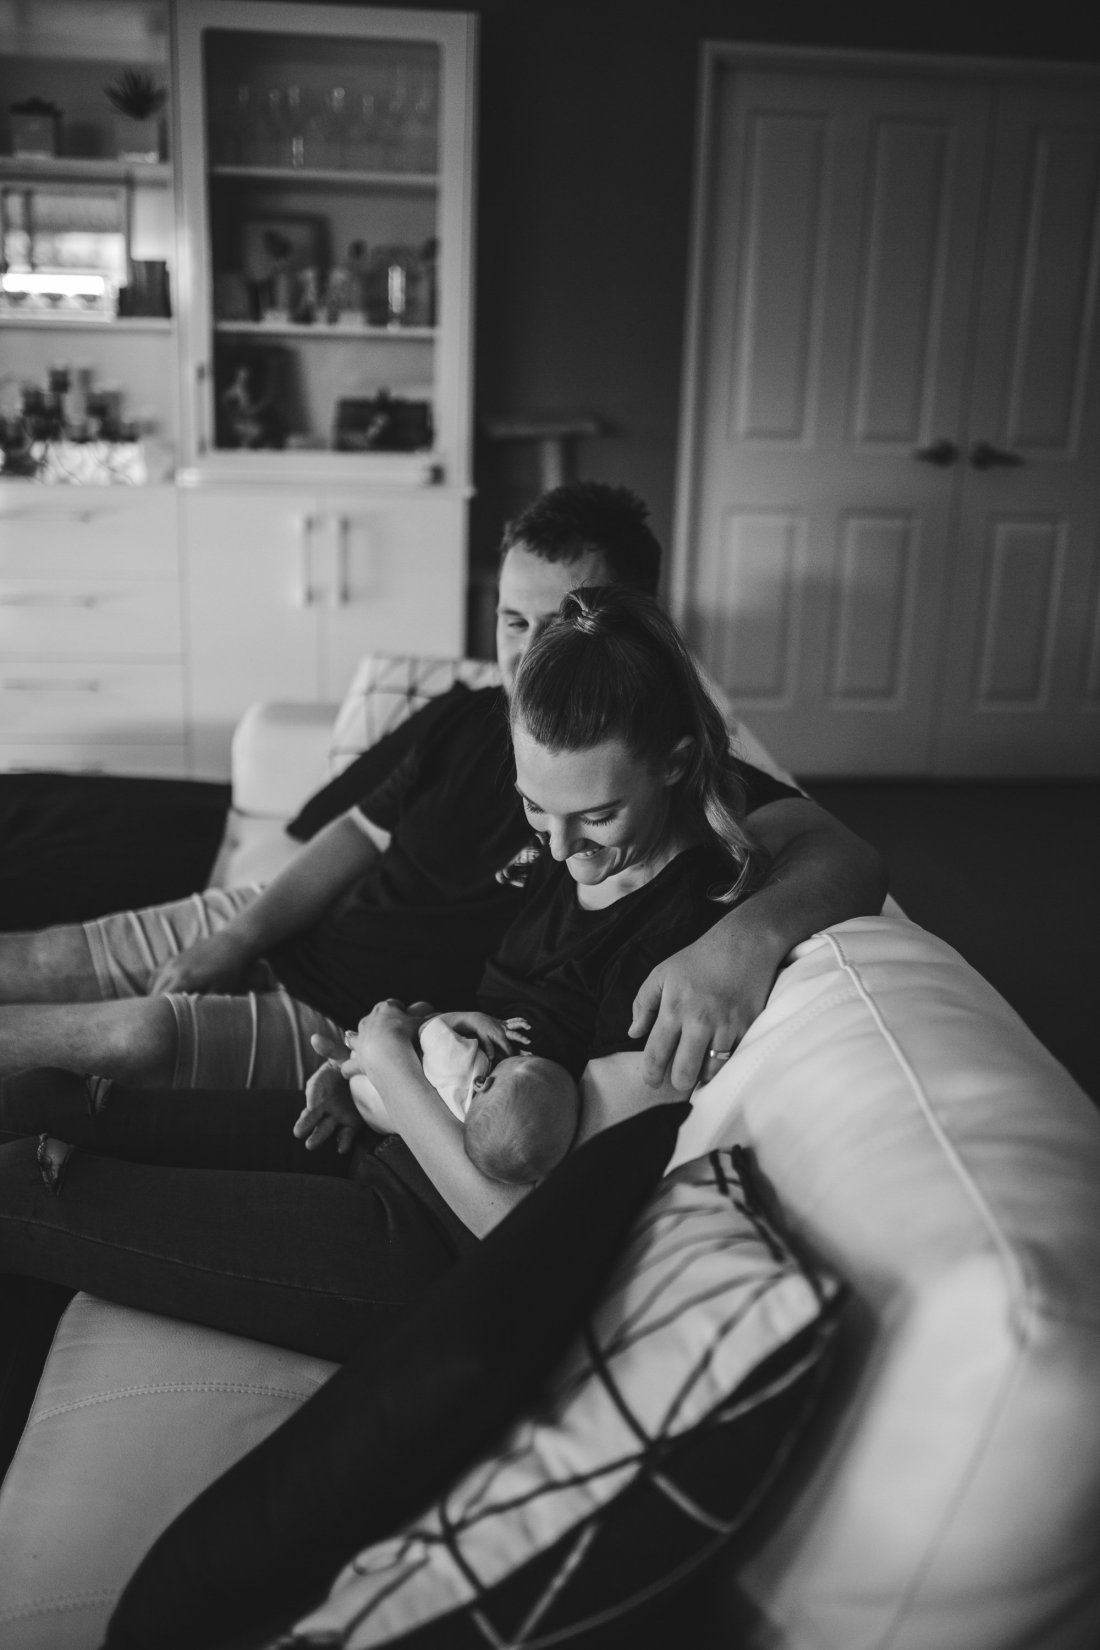 Family Photography | Lifestyle Sessions | Perth Newborn Photographer | Perth Family Photography | Estelle 66